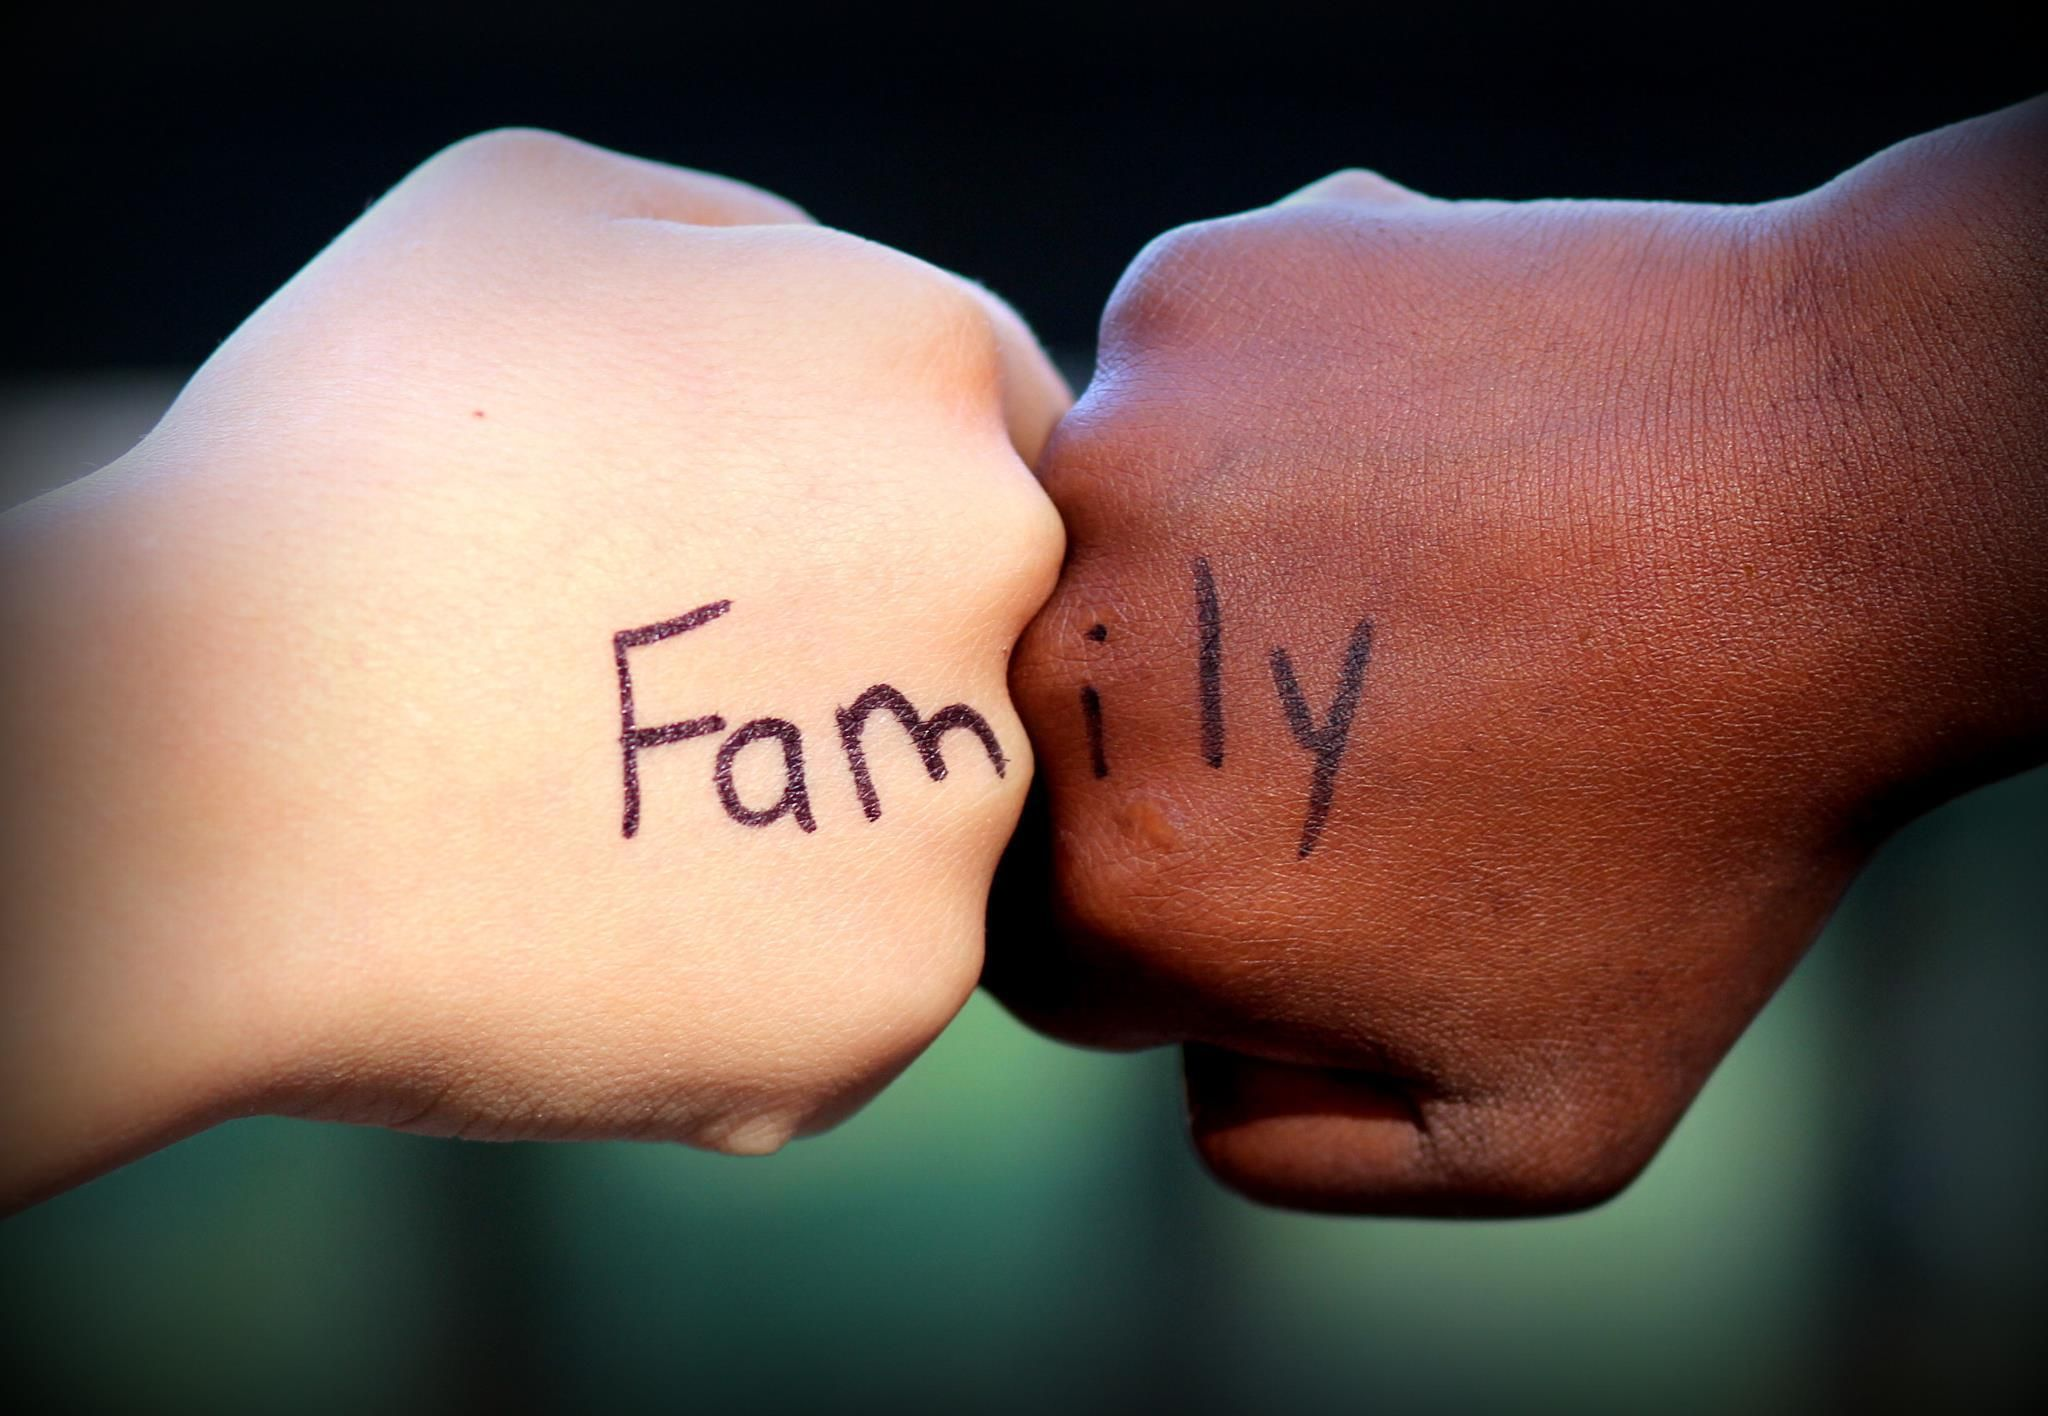 Interracial Love Quotes Family  Inspiration  Pinterest  Adoption Genetics And Foster Care